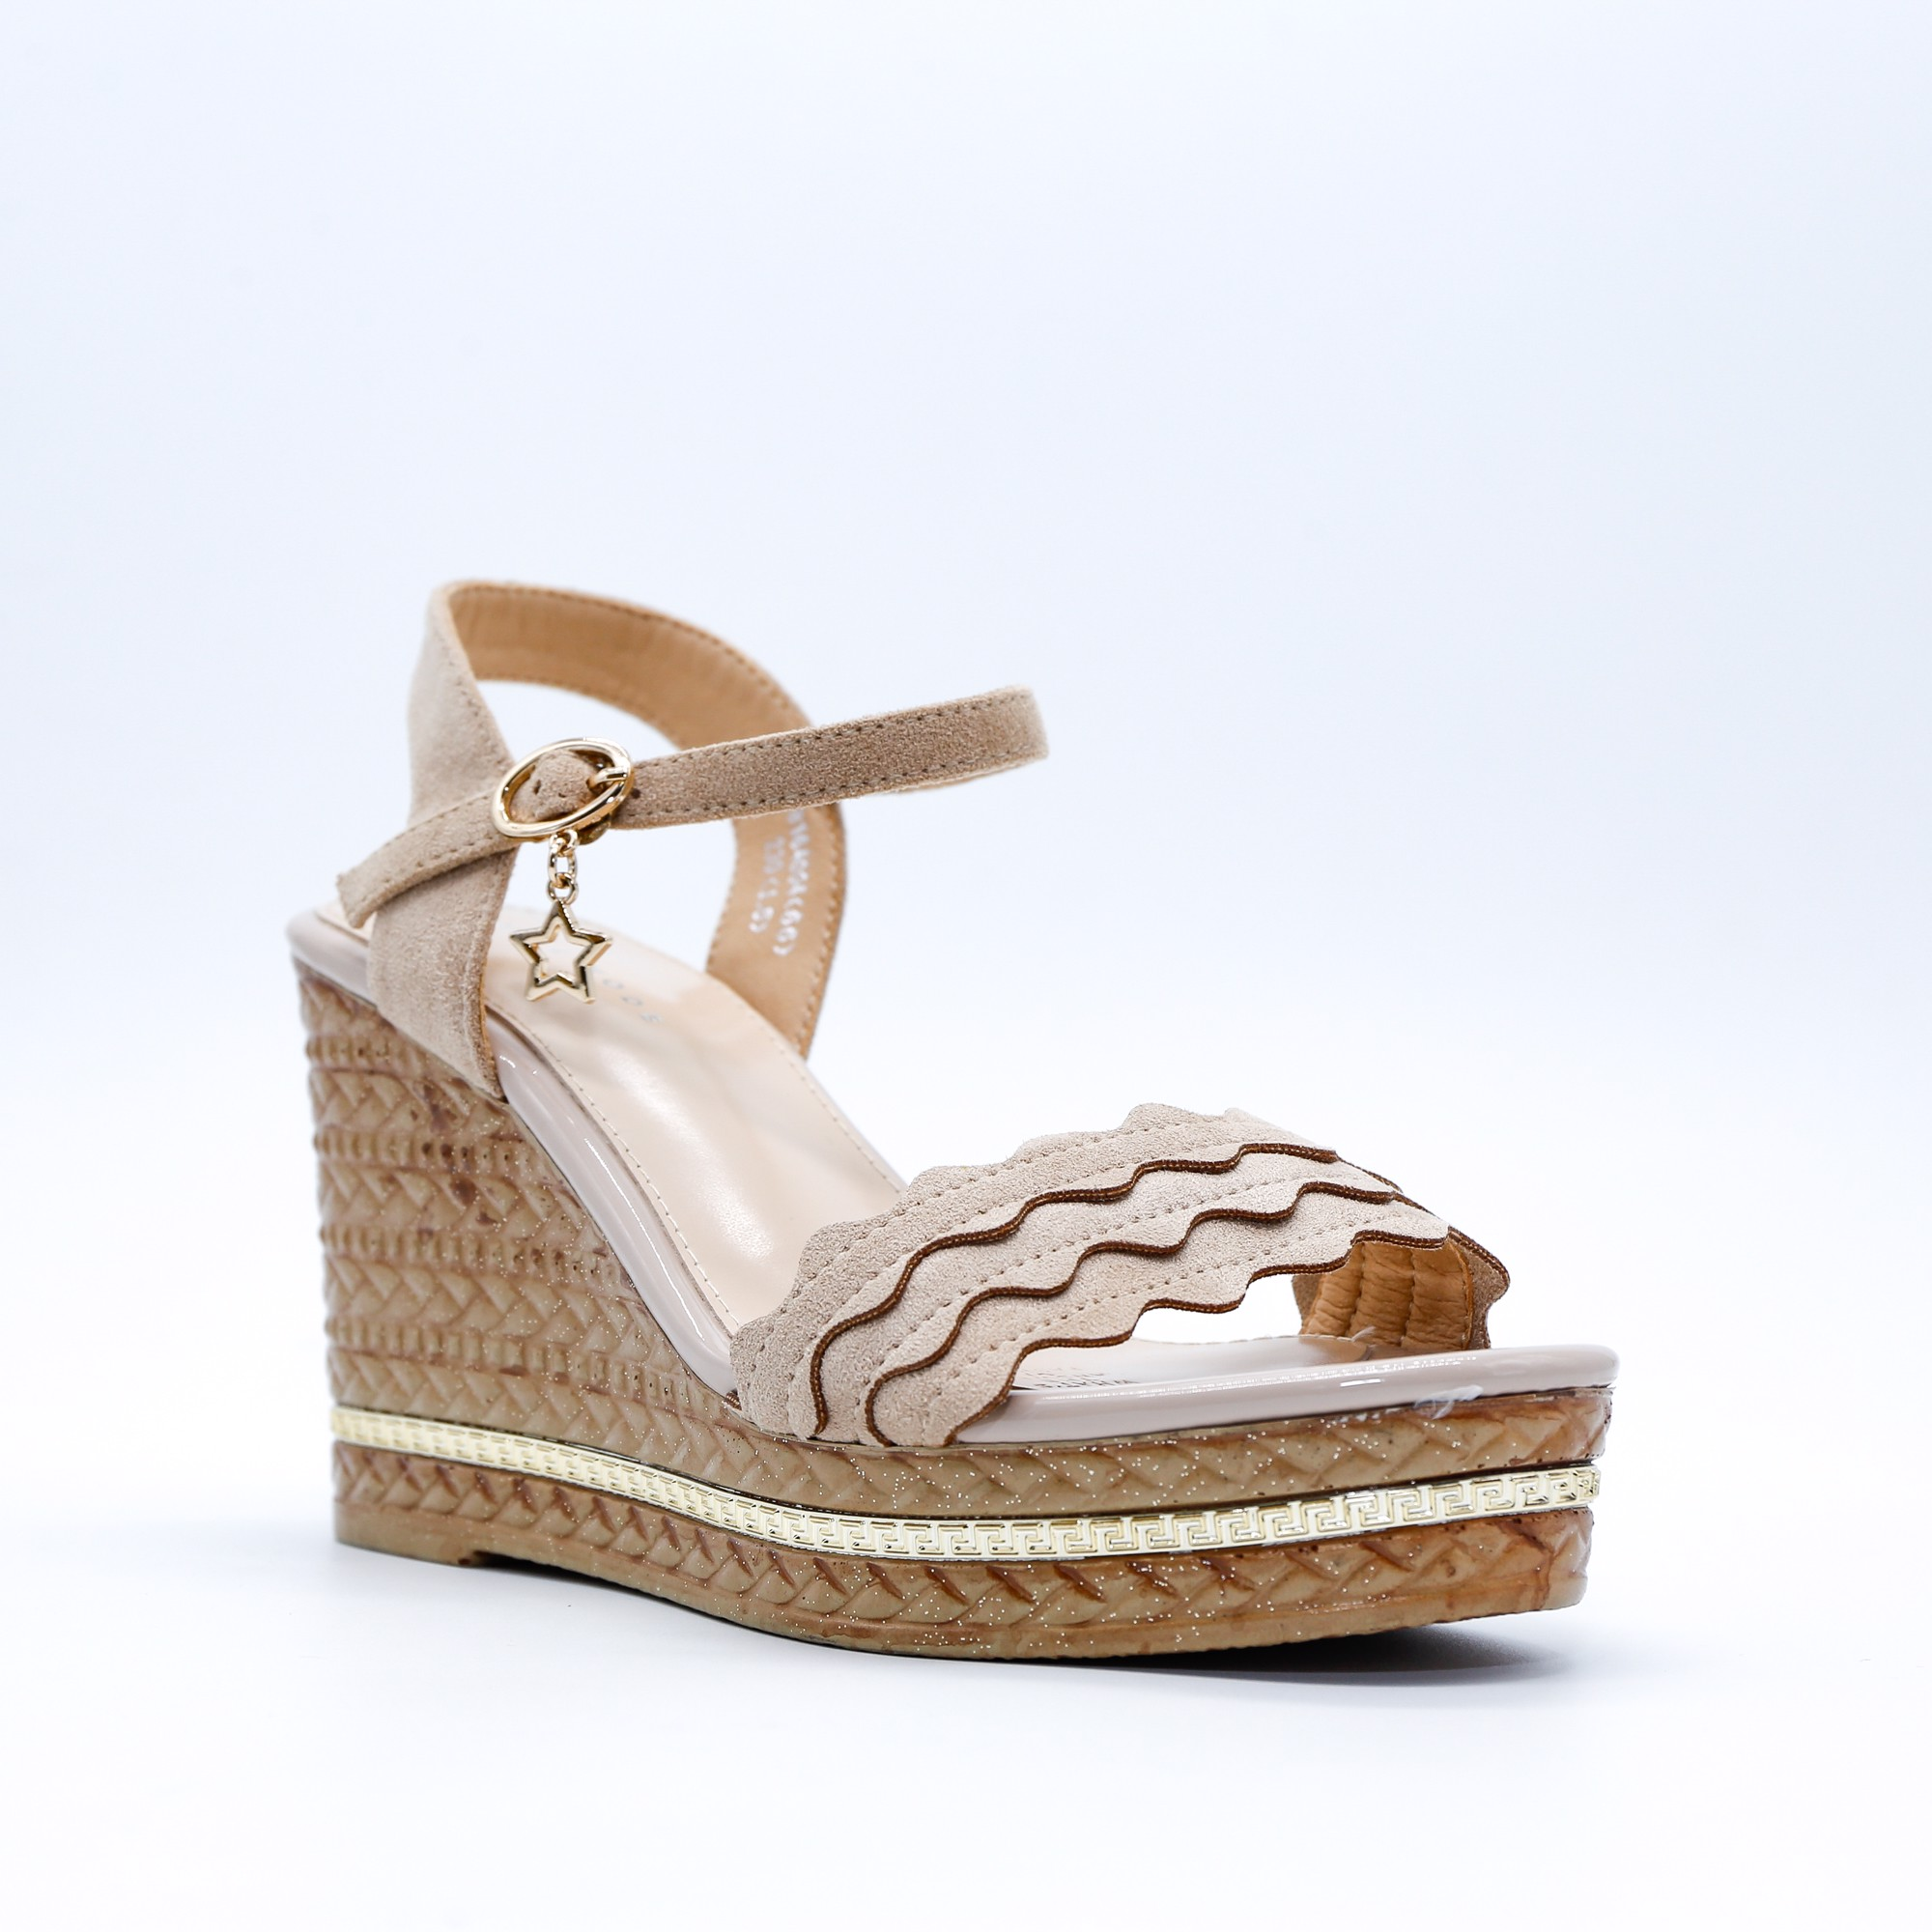 Sandals nữ Exull Mode 1816400481